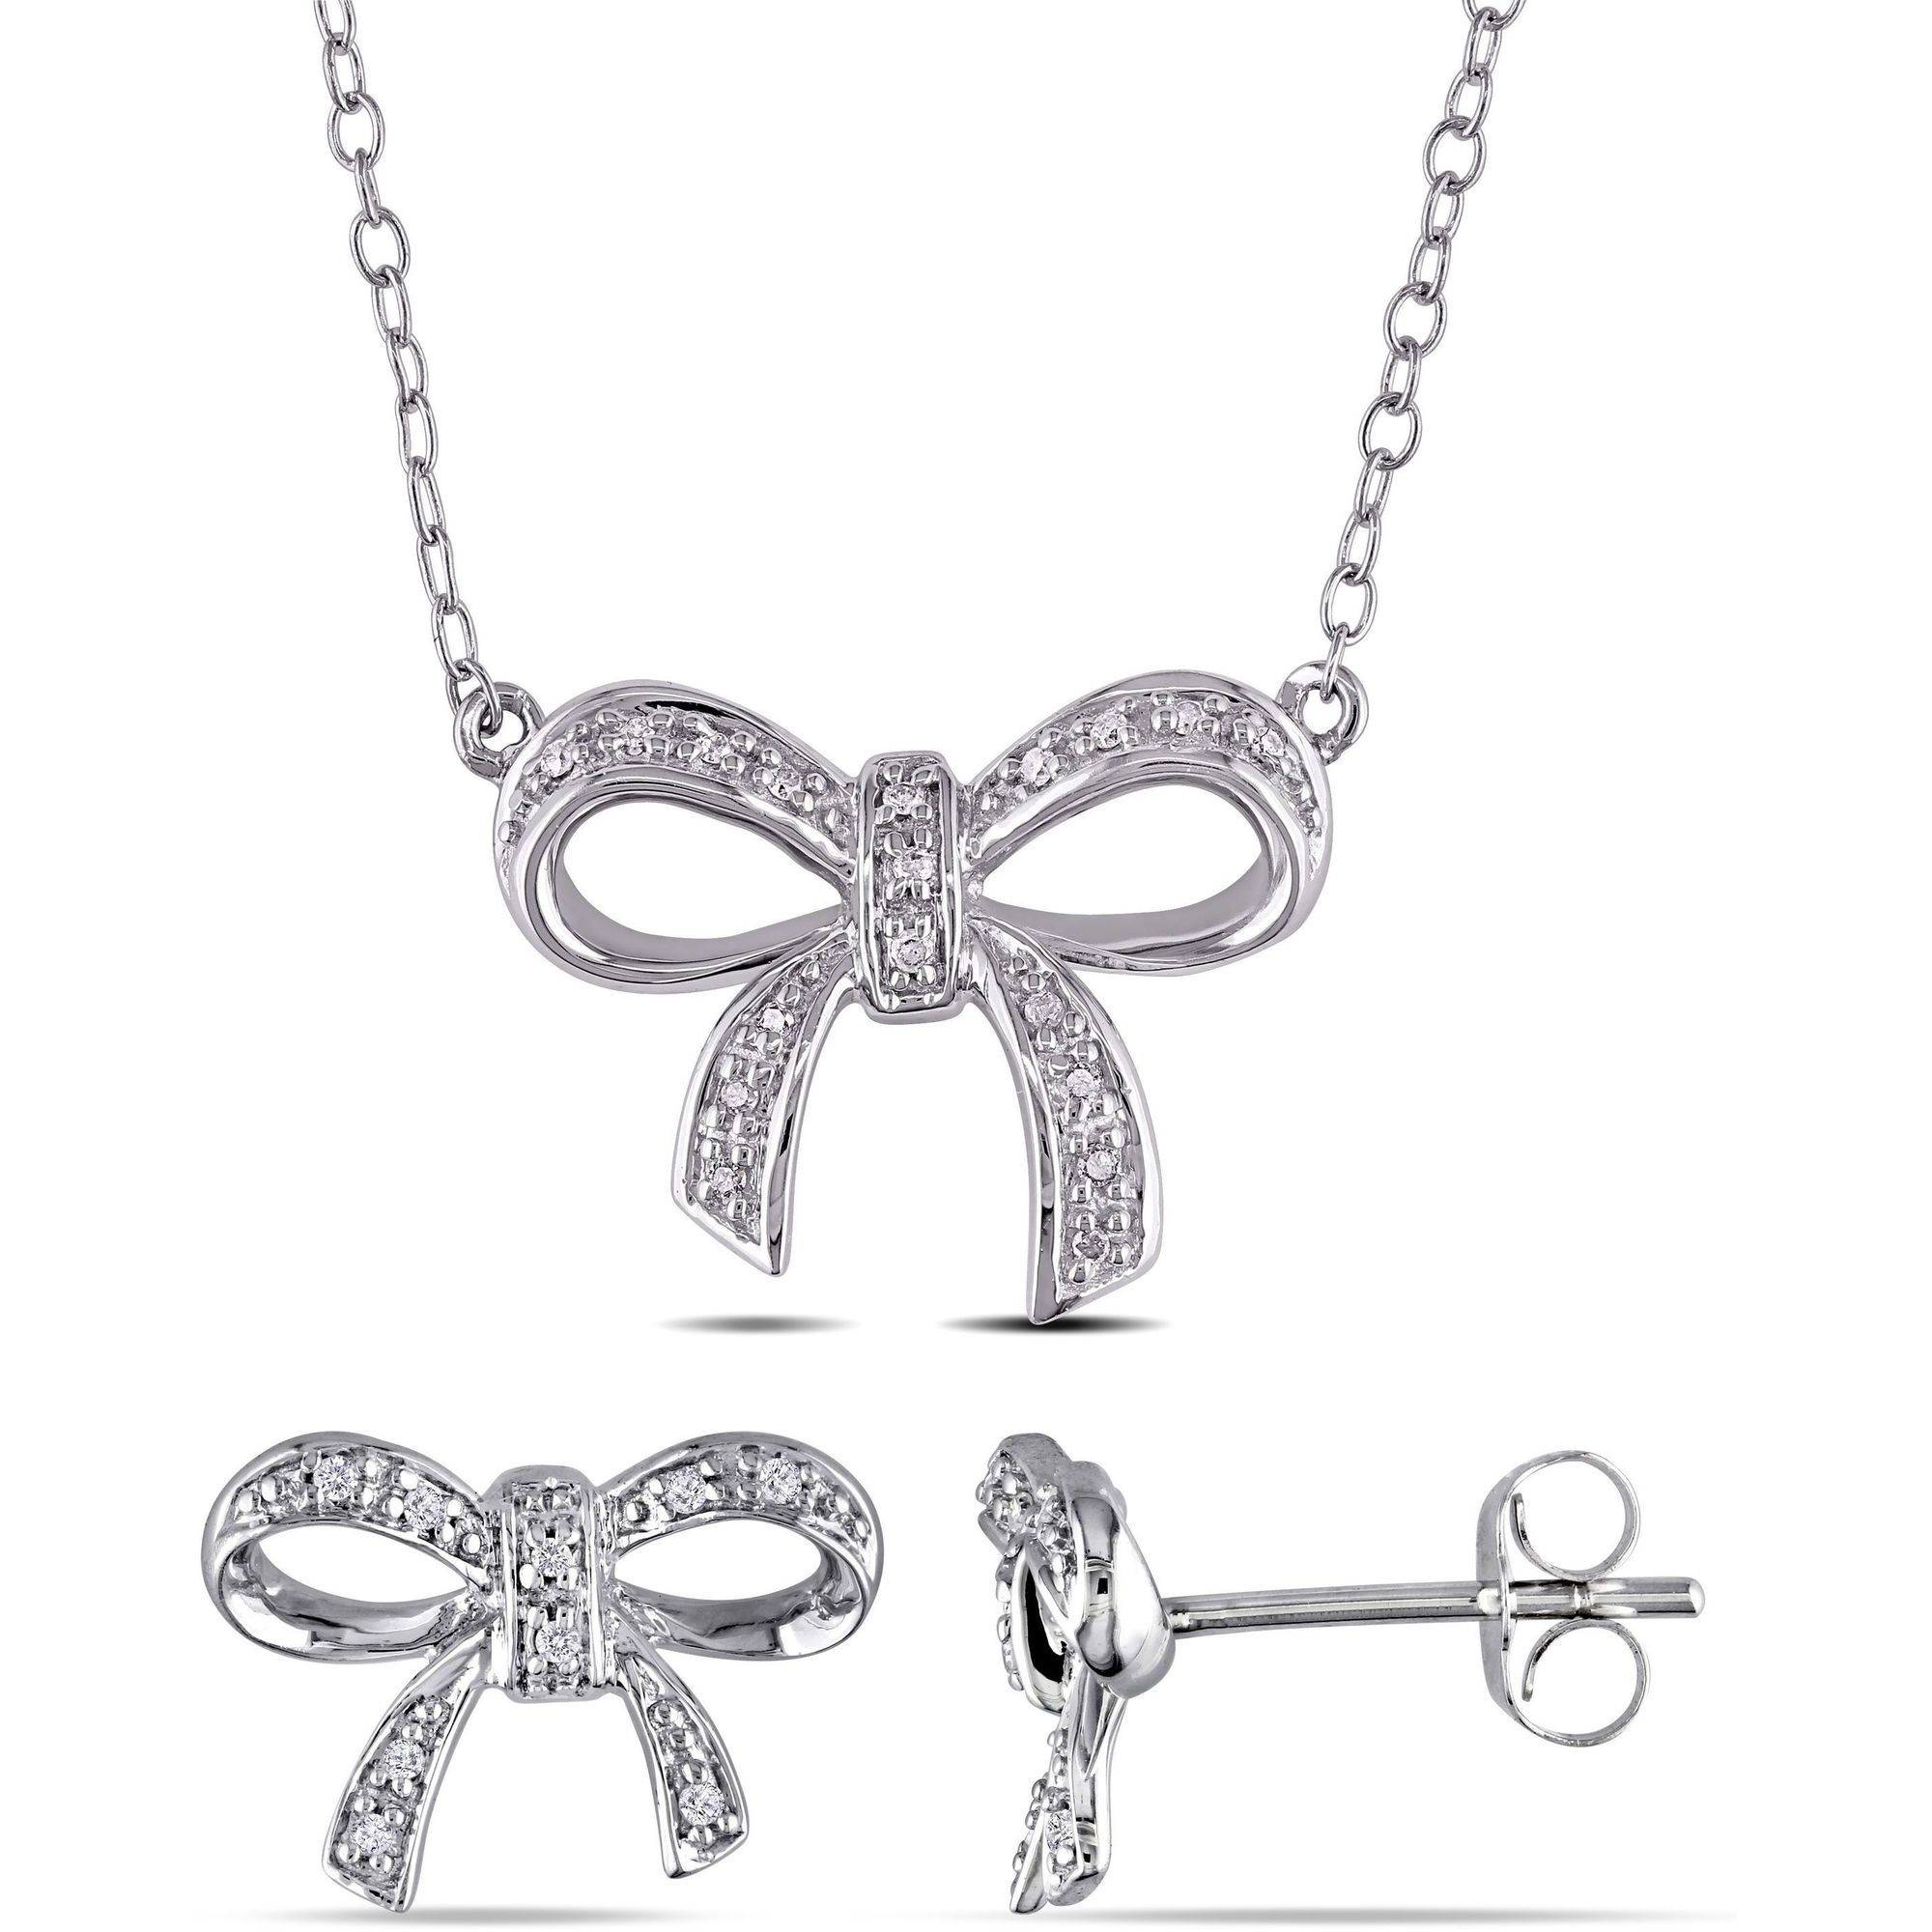 Miabella 1/10 Carat T.W. Diamond Sterling Silver Bow Pendant and Earrings Set, 18""